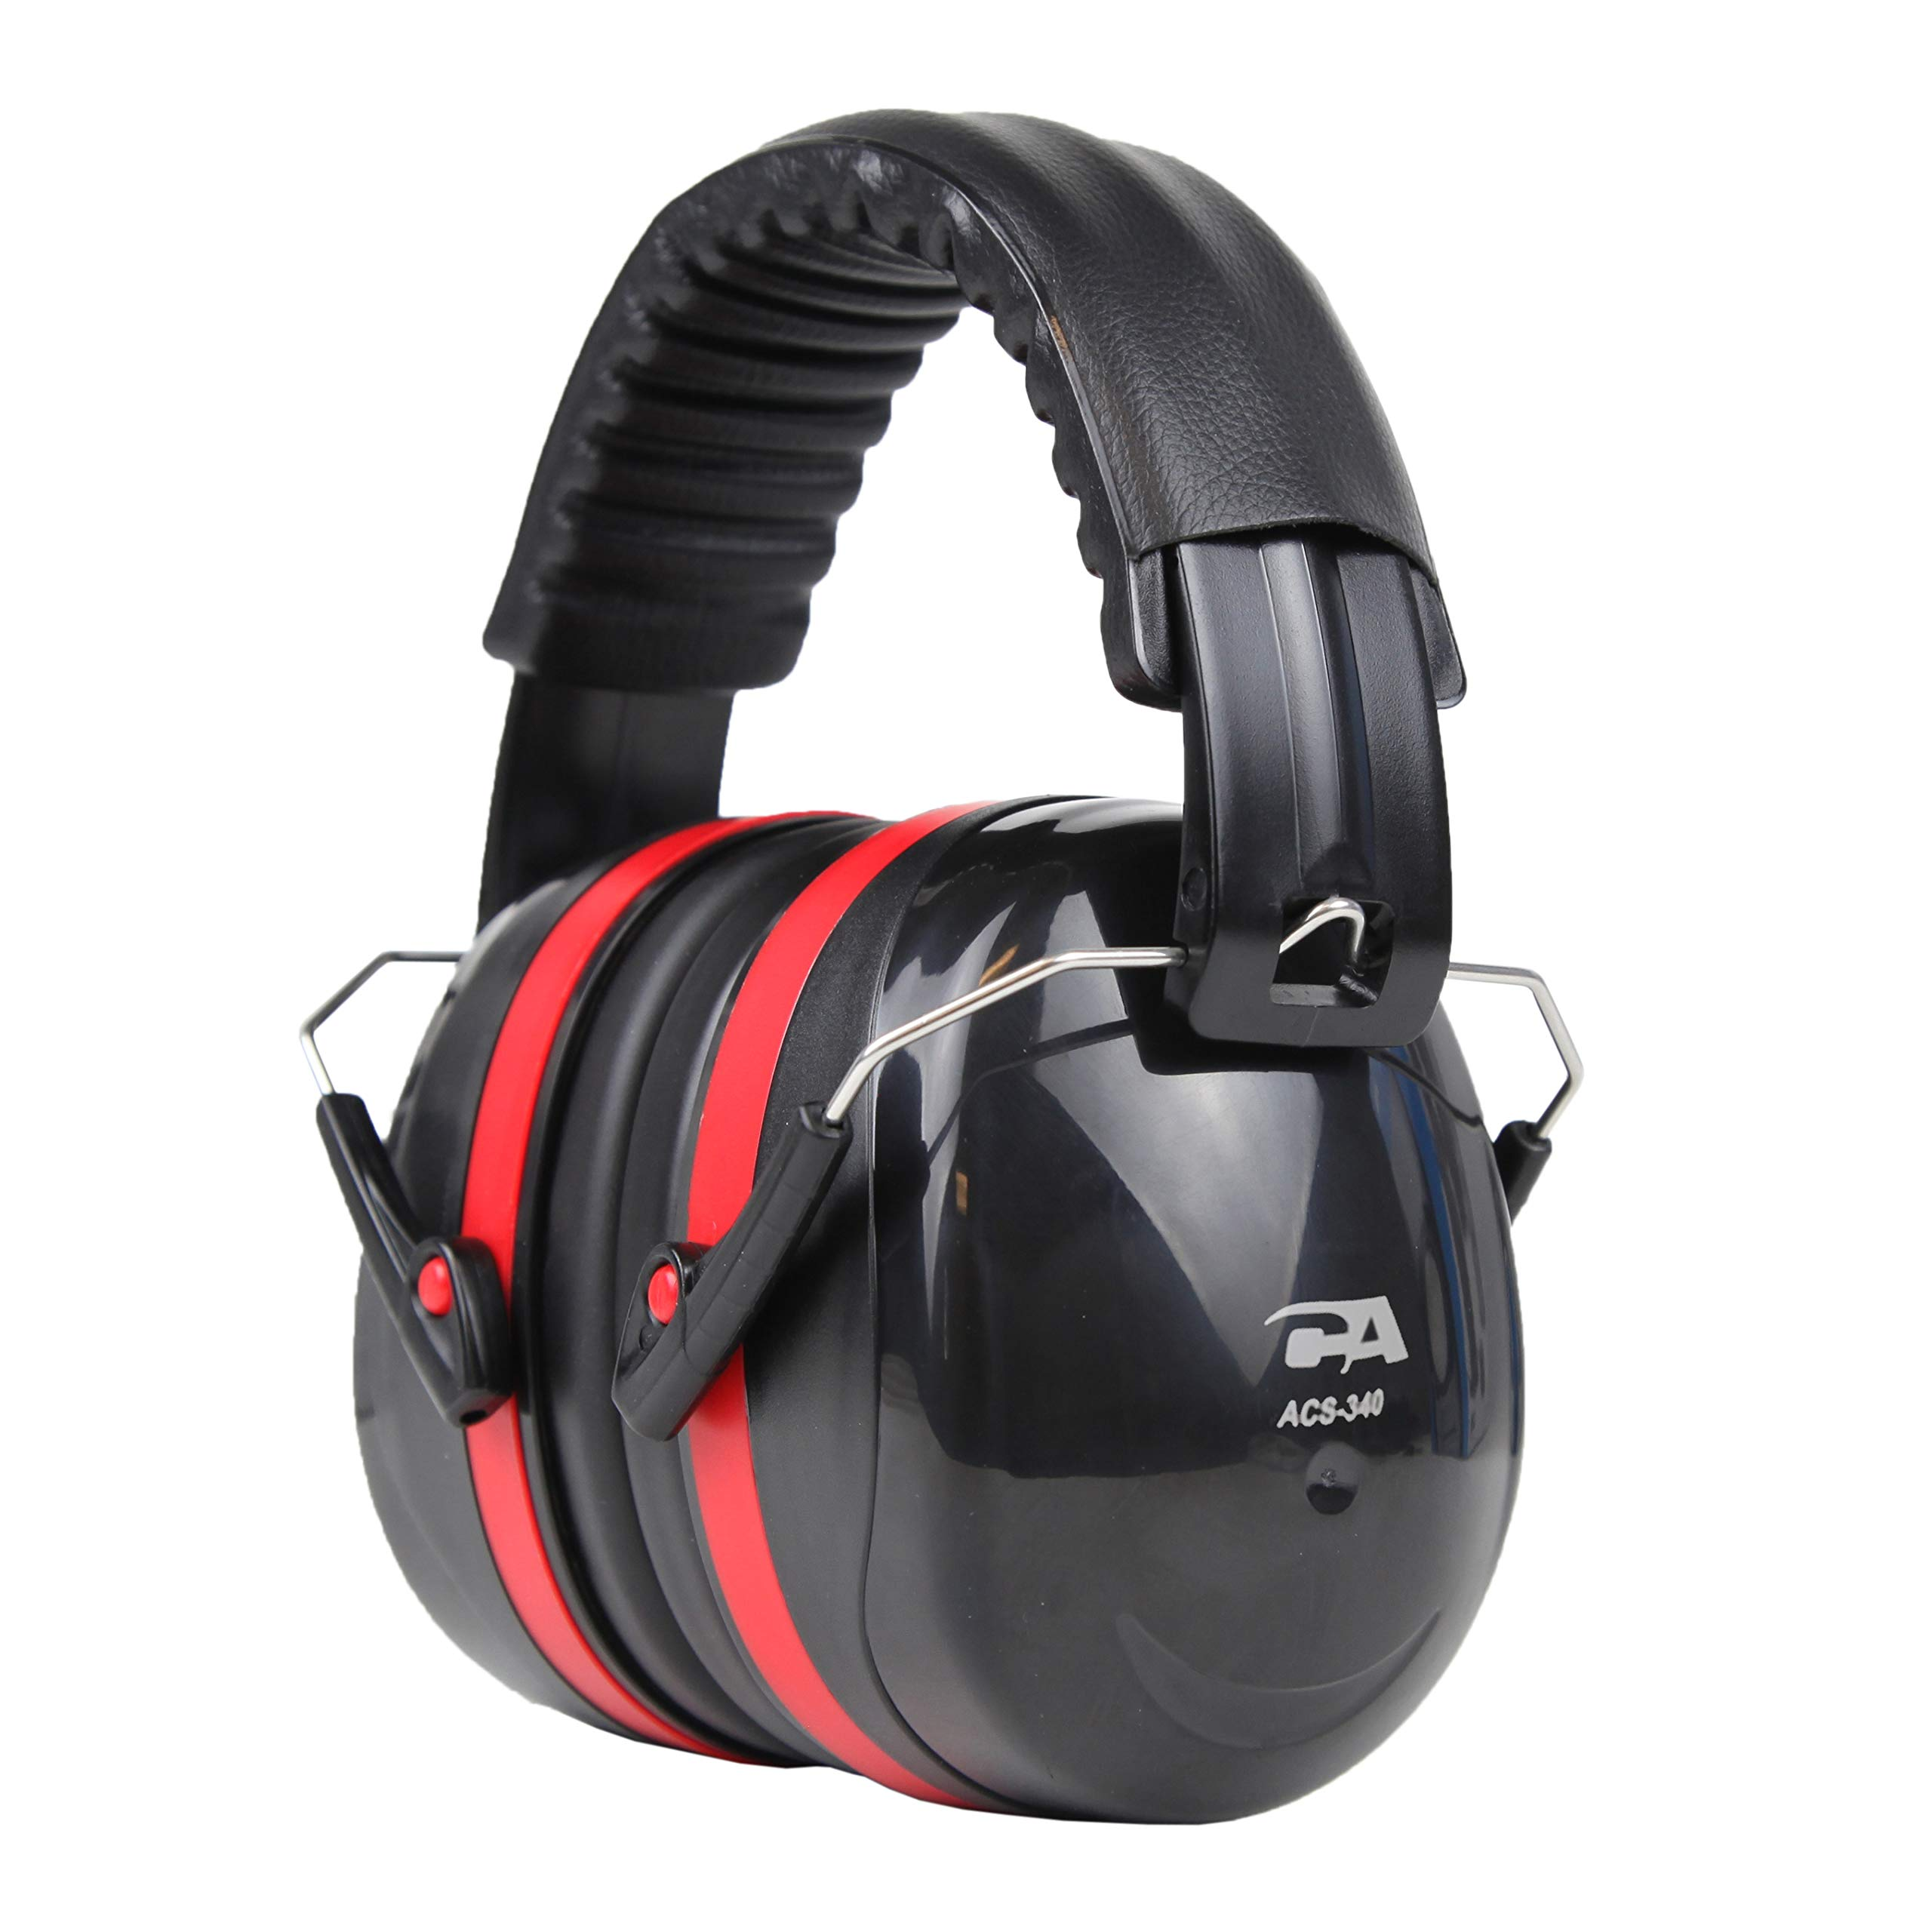 Cyber Acoustic Professional Safety Heavy Duty Ear Muffs for Hearing Protection and Noise Reduction for Air Traffic Ground Support, Construction Work, Hunting/Shooting Ranges, and more (ACS-340) by Cyber Acoustics